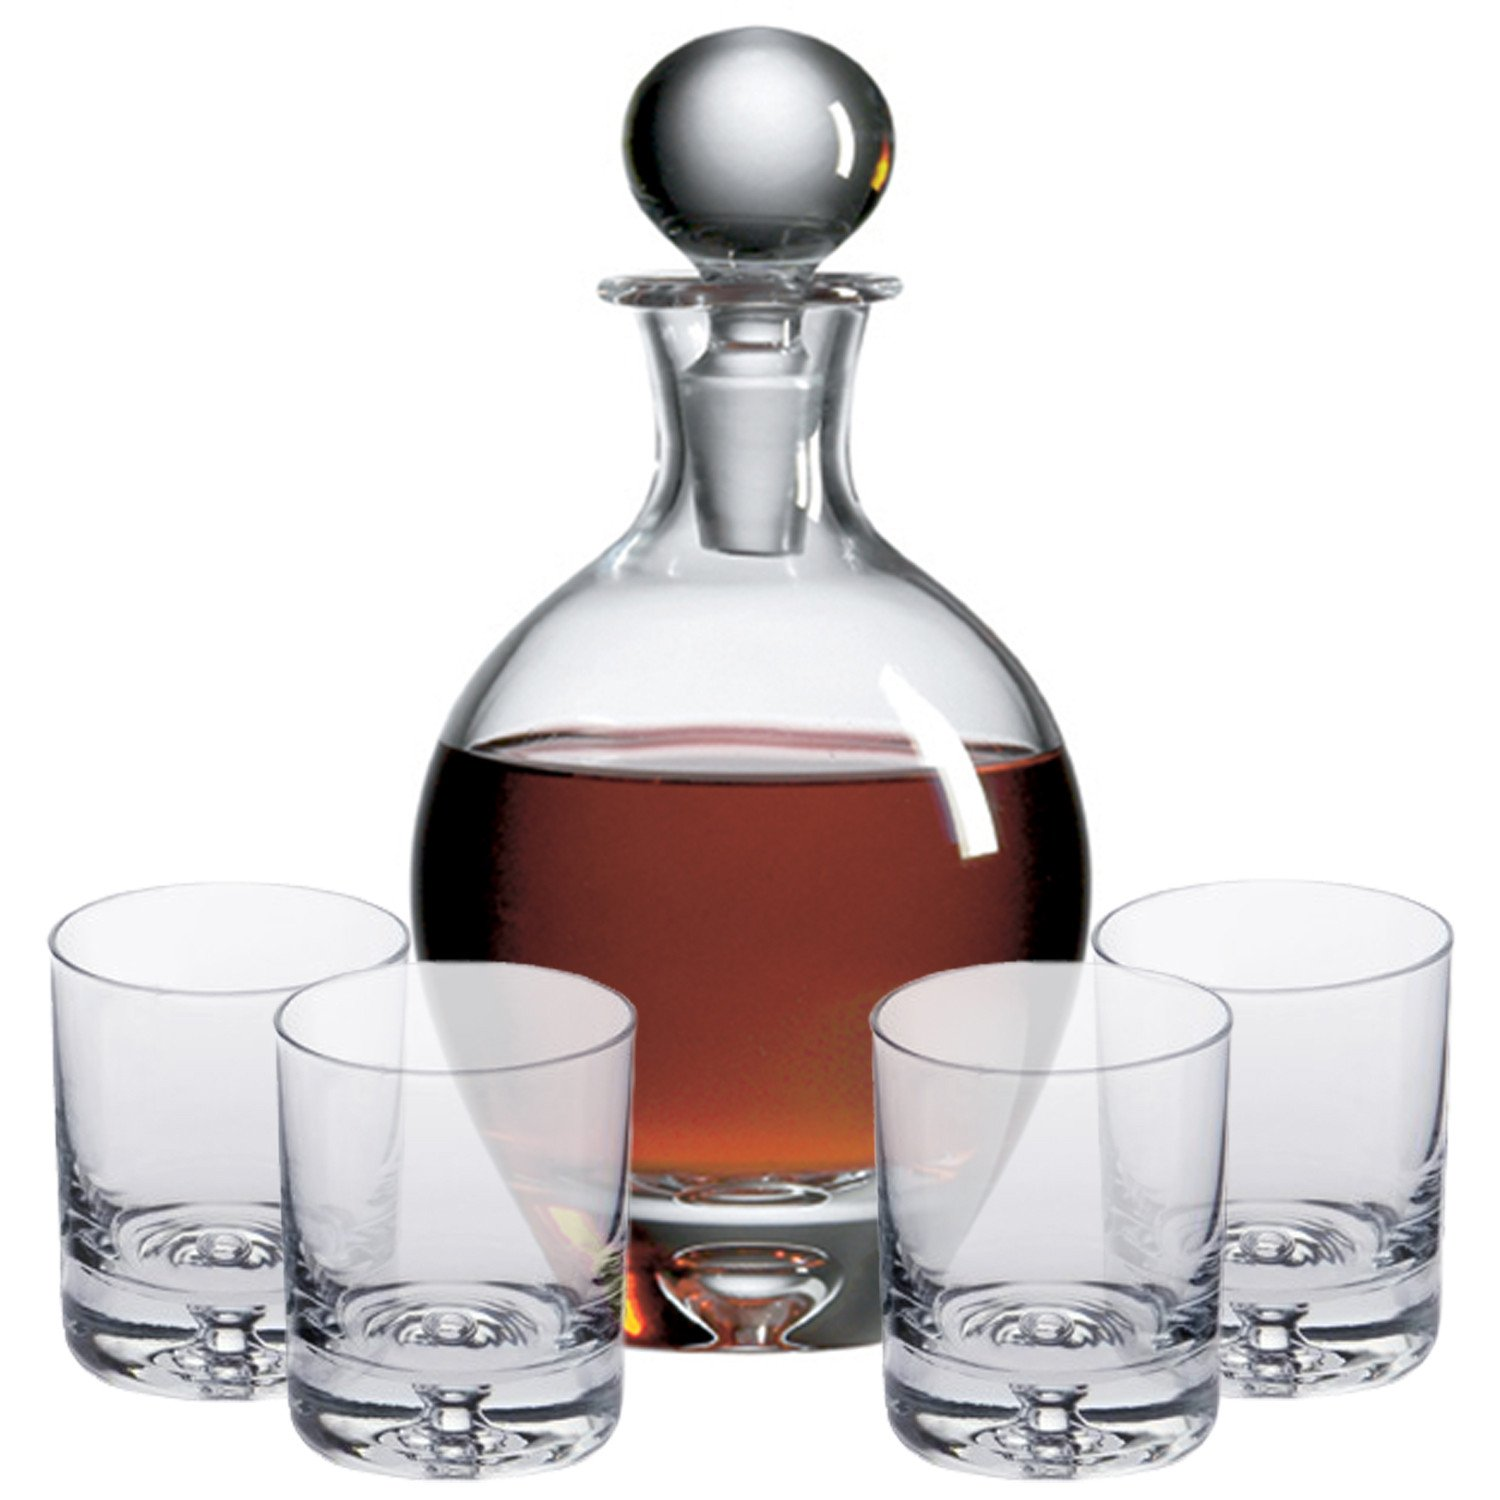 Ravenscroft Crystal 125th Anniversary St. Jacques Decanter Gift Set